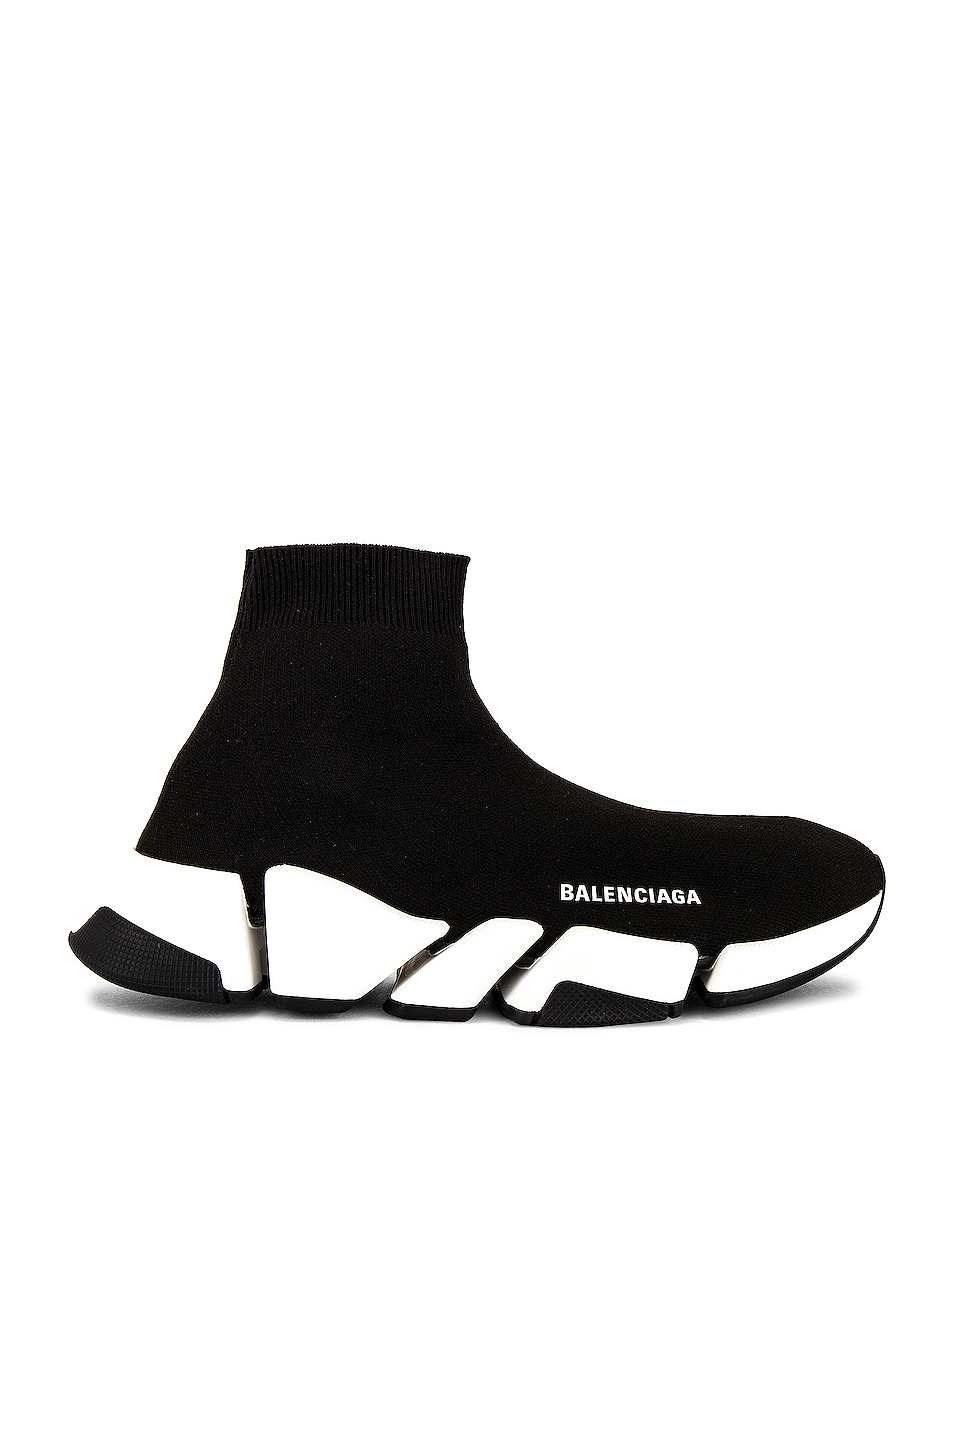 Image 1 of Balenciaga Speed 2.0 Sneaker in Black